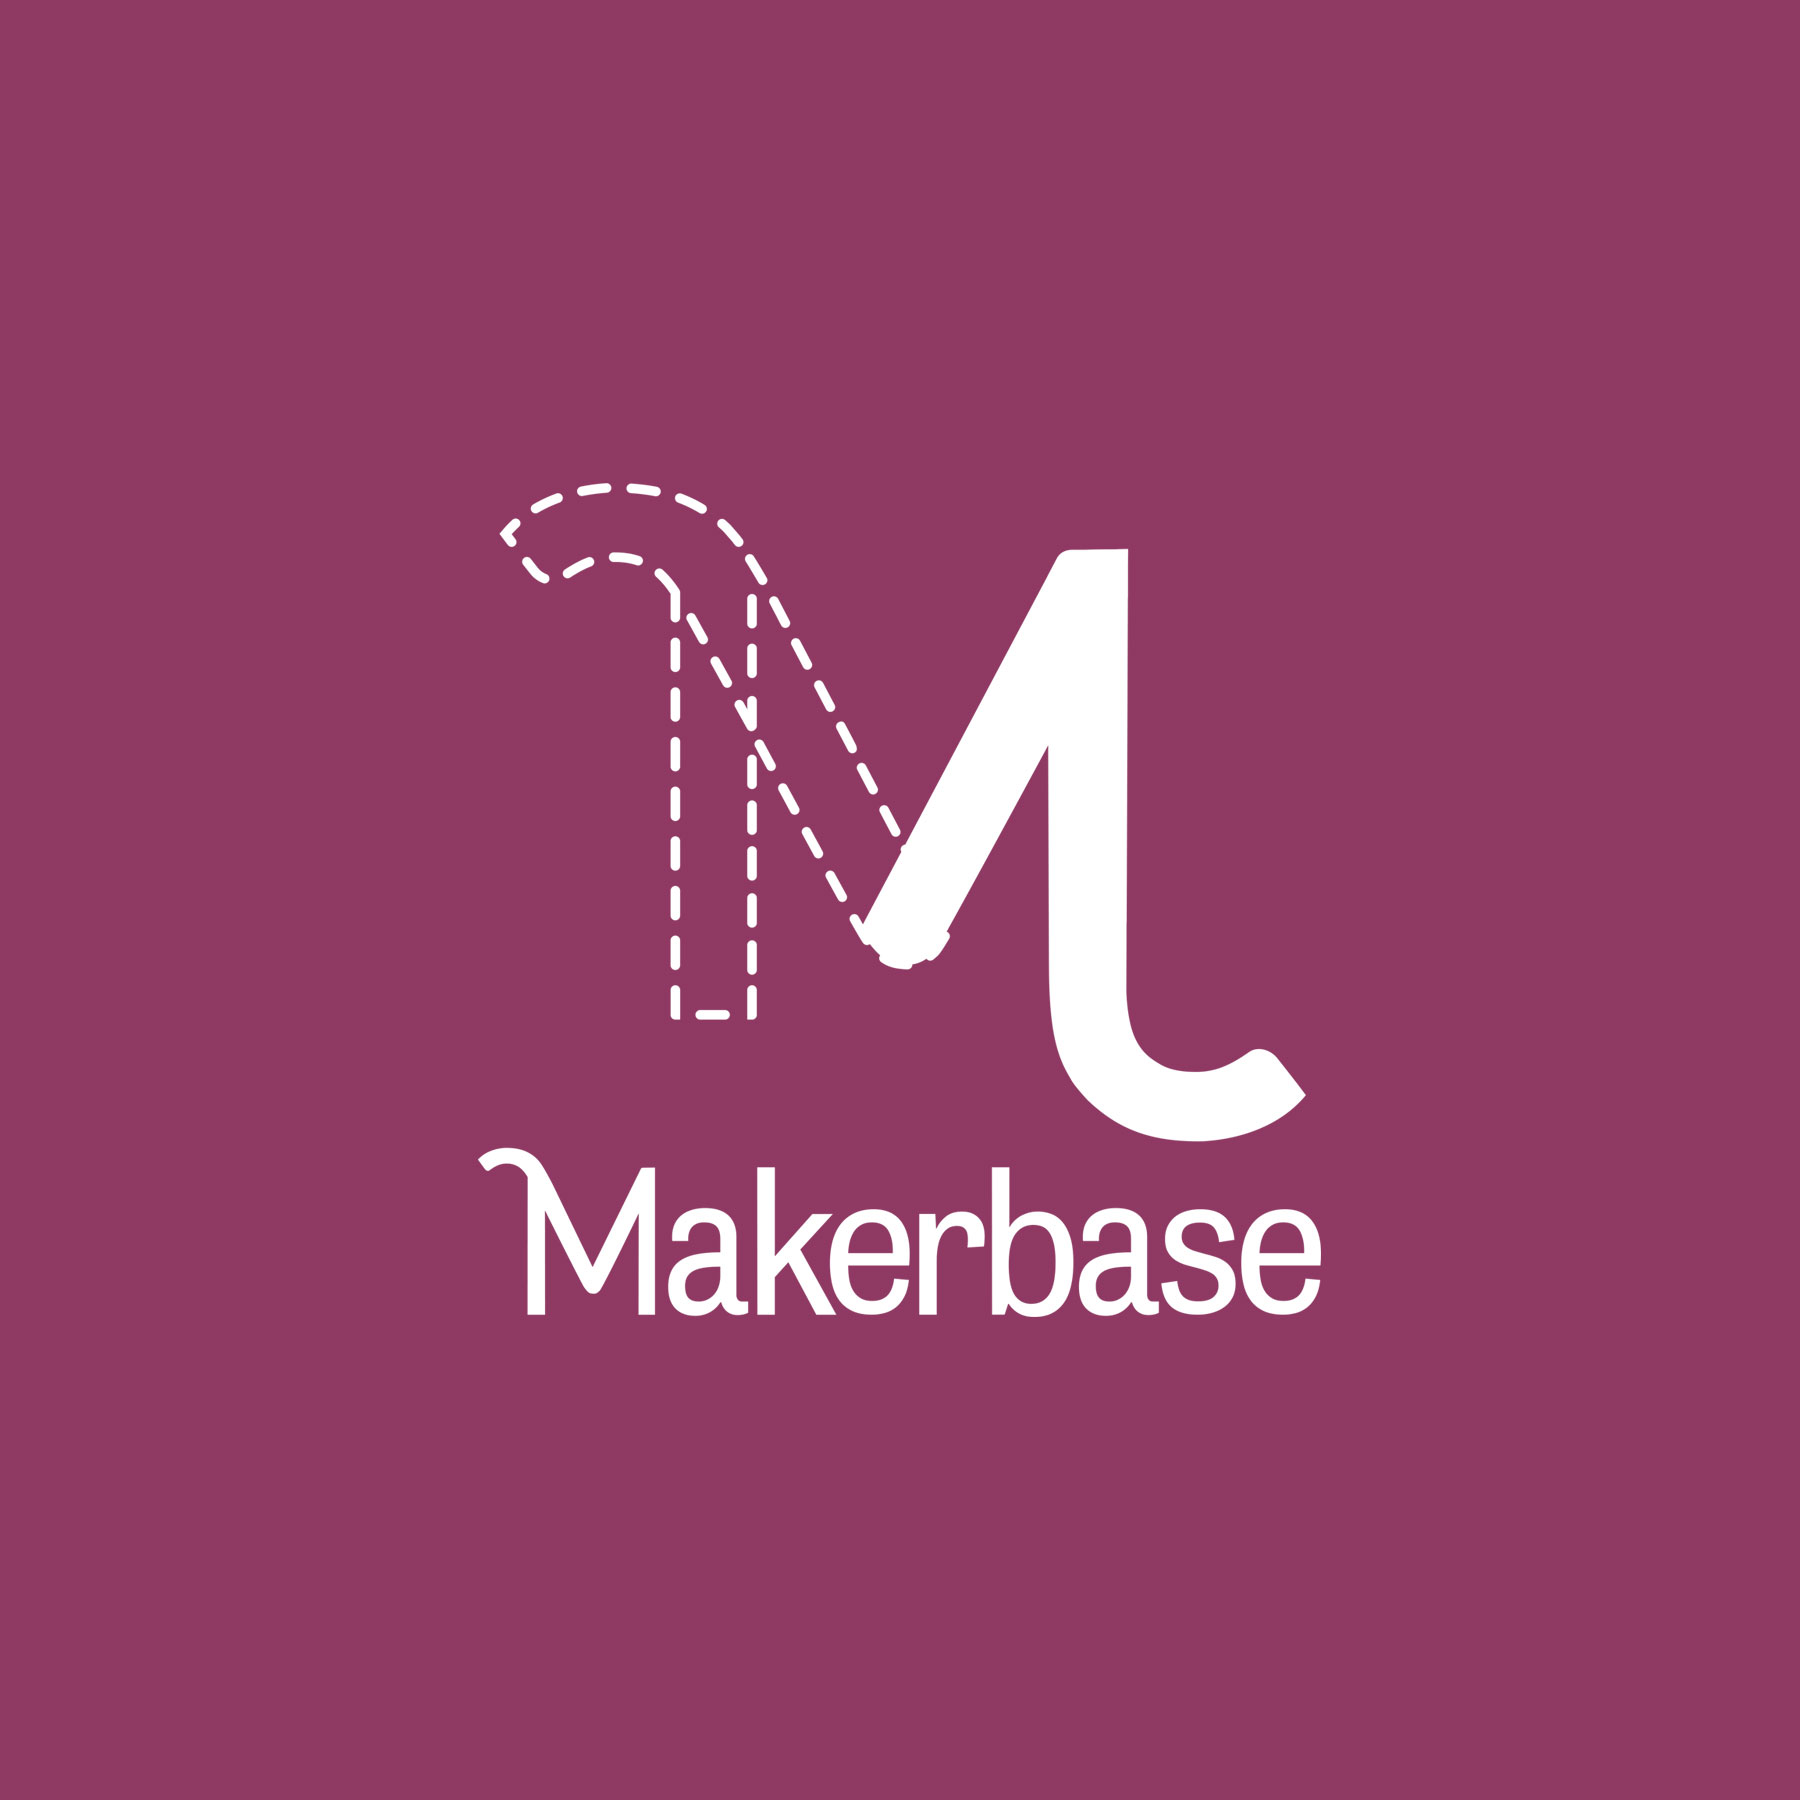 Makerbase logo